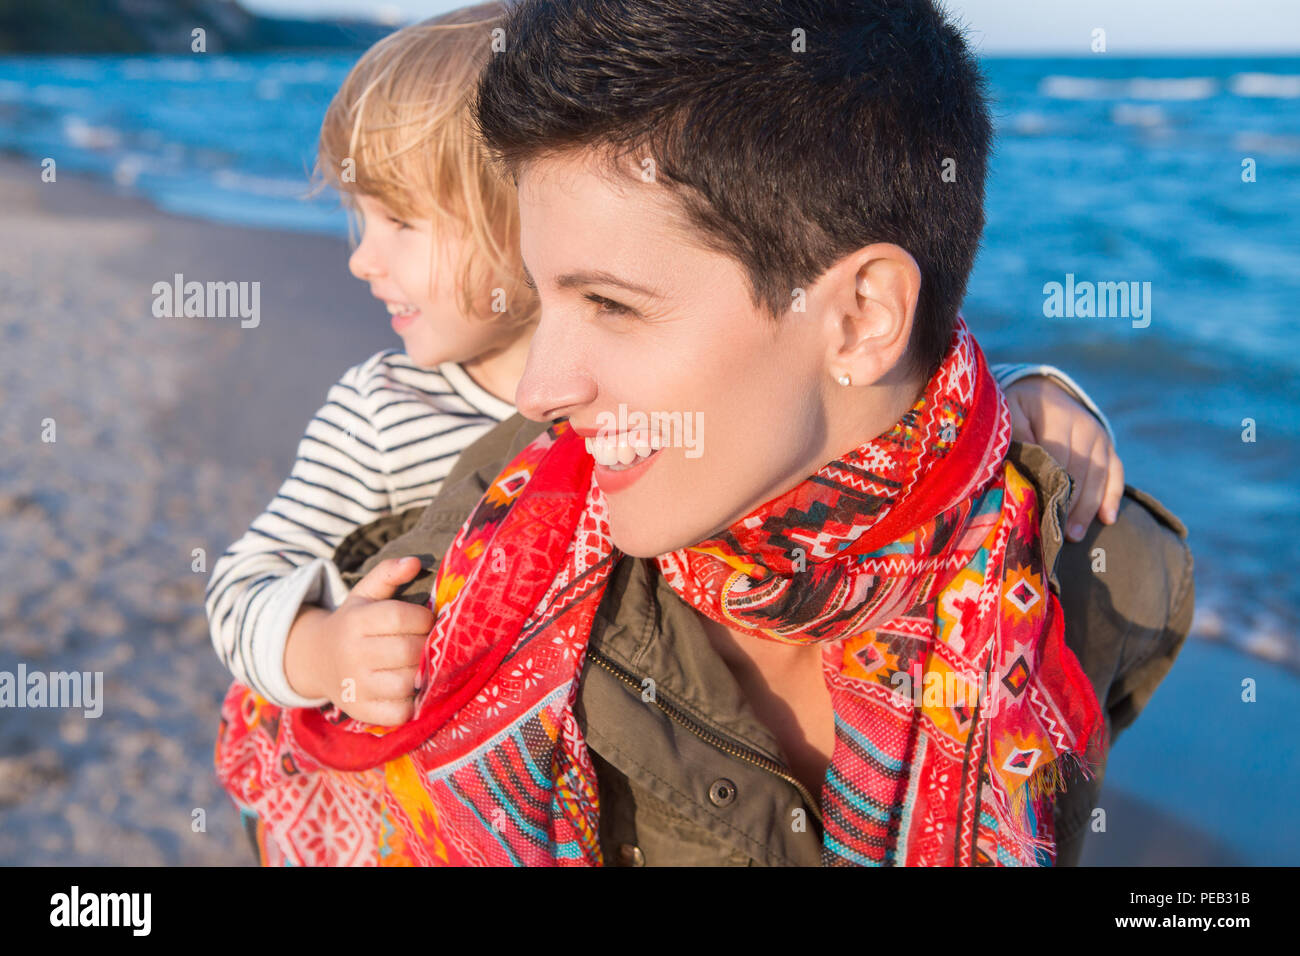 Group portrait of smiling white Caucasian mother and daughter baby girl, piggy back riding, playing running on ocean sea beach at sunset outdoors, hap - Stock Image